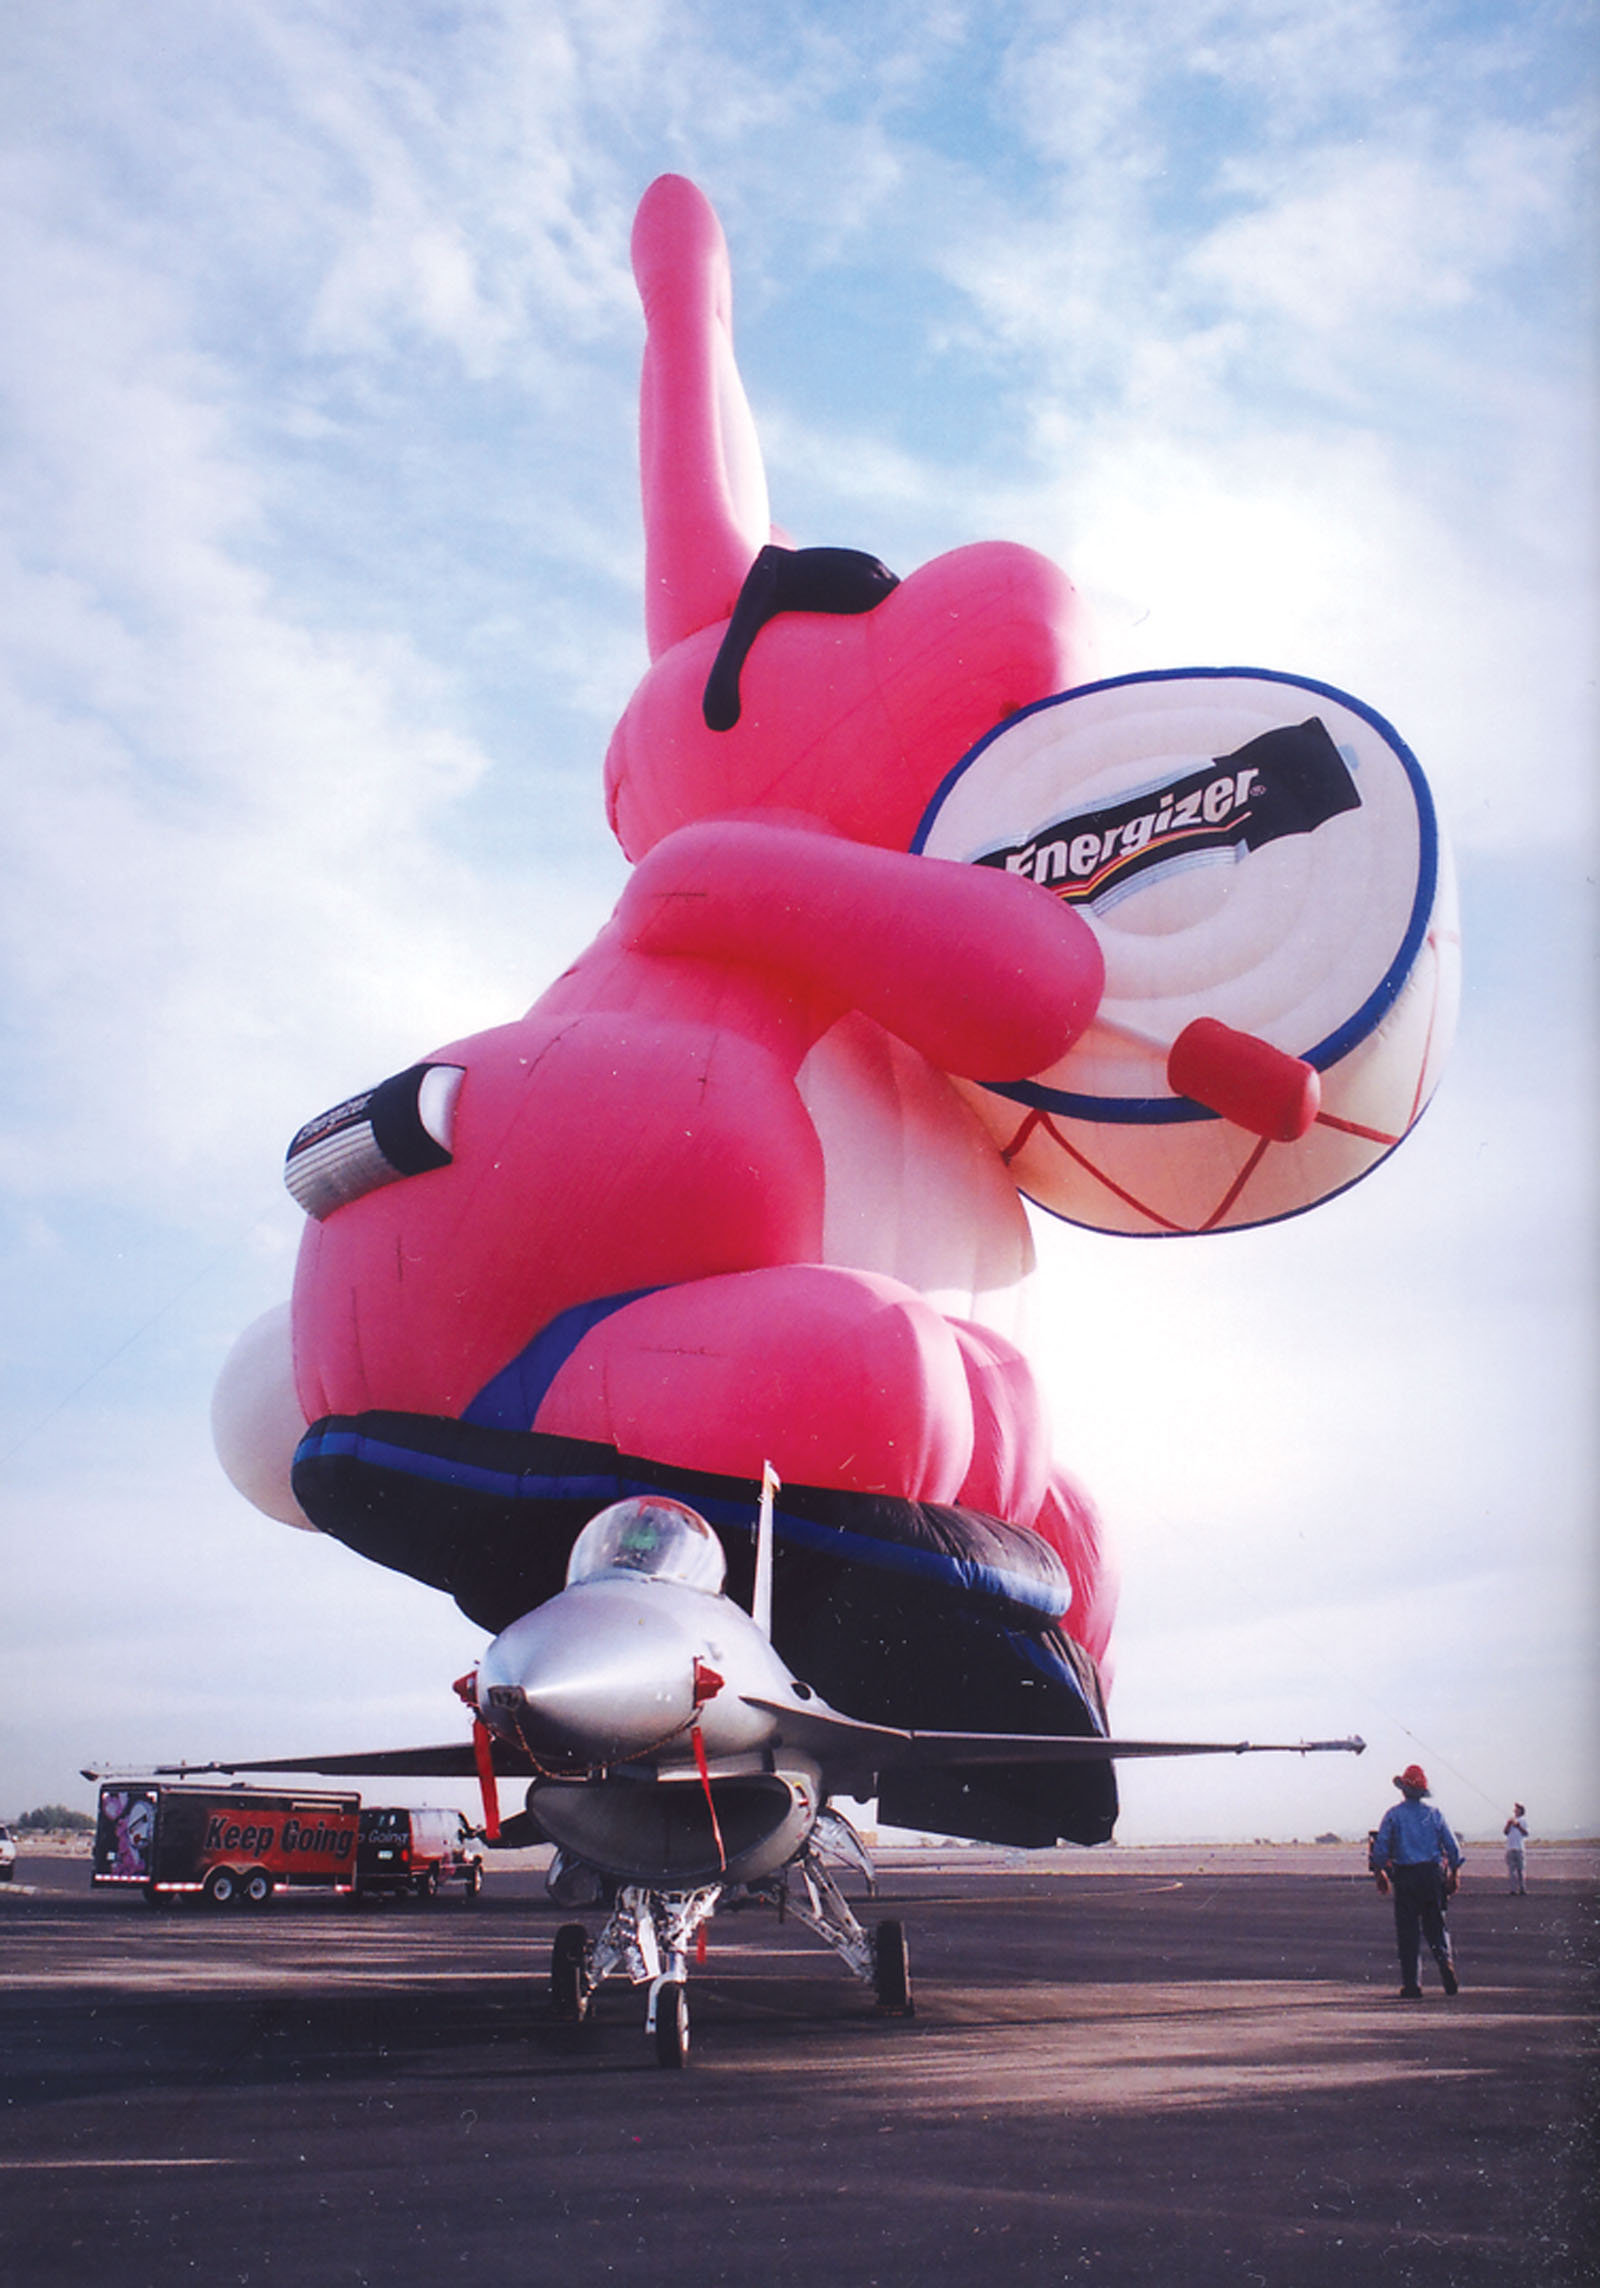 Thunderbird Balloon and Air Classic Ascends to New Heights Over Glendale